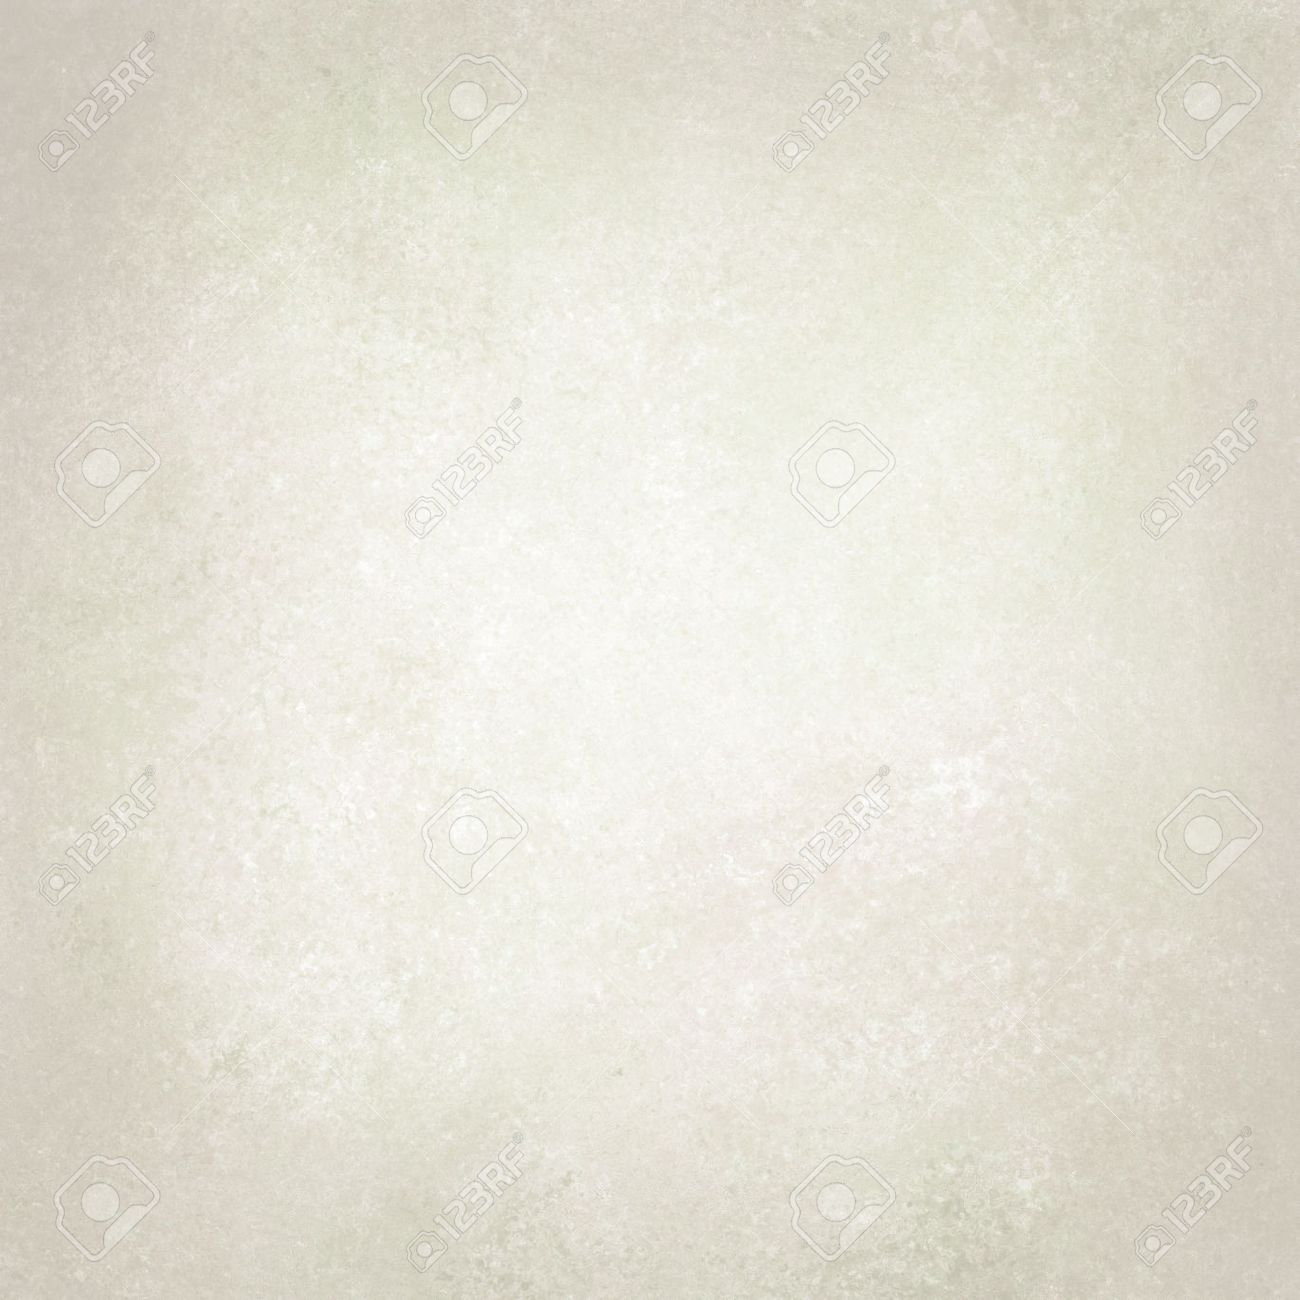 Pastel Off White Background Paper With Faint Texture Old White